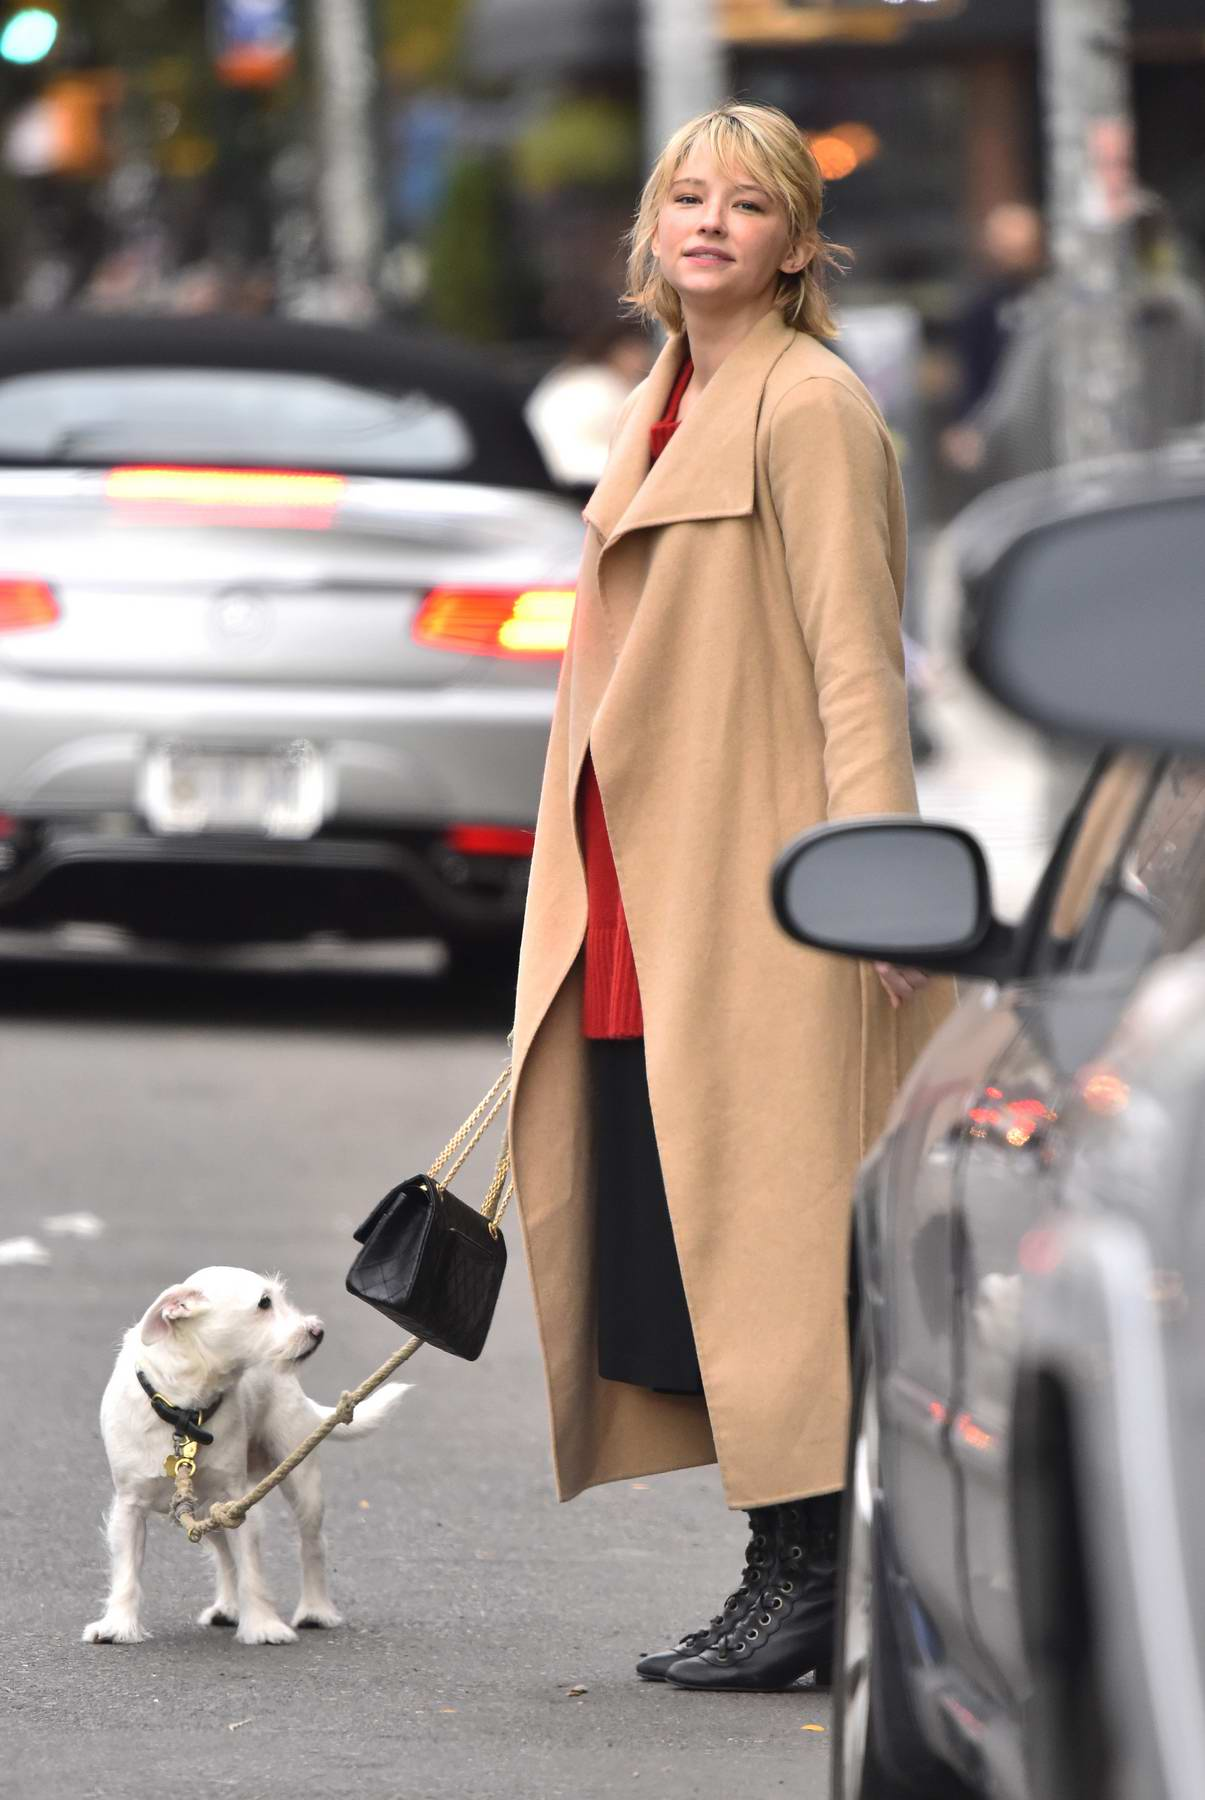 Haley Bennett walking her dog outside The Bowery Hotel in New York City